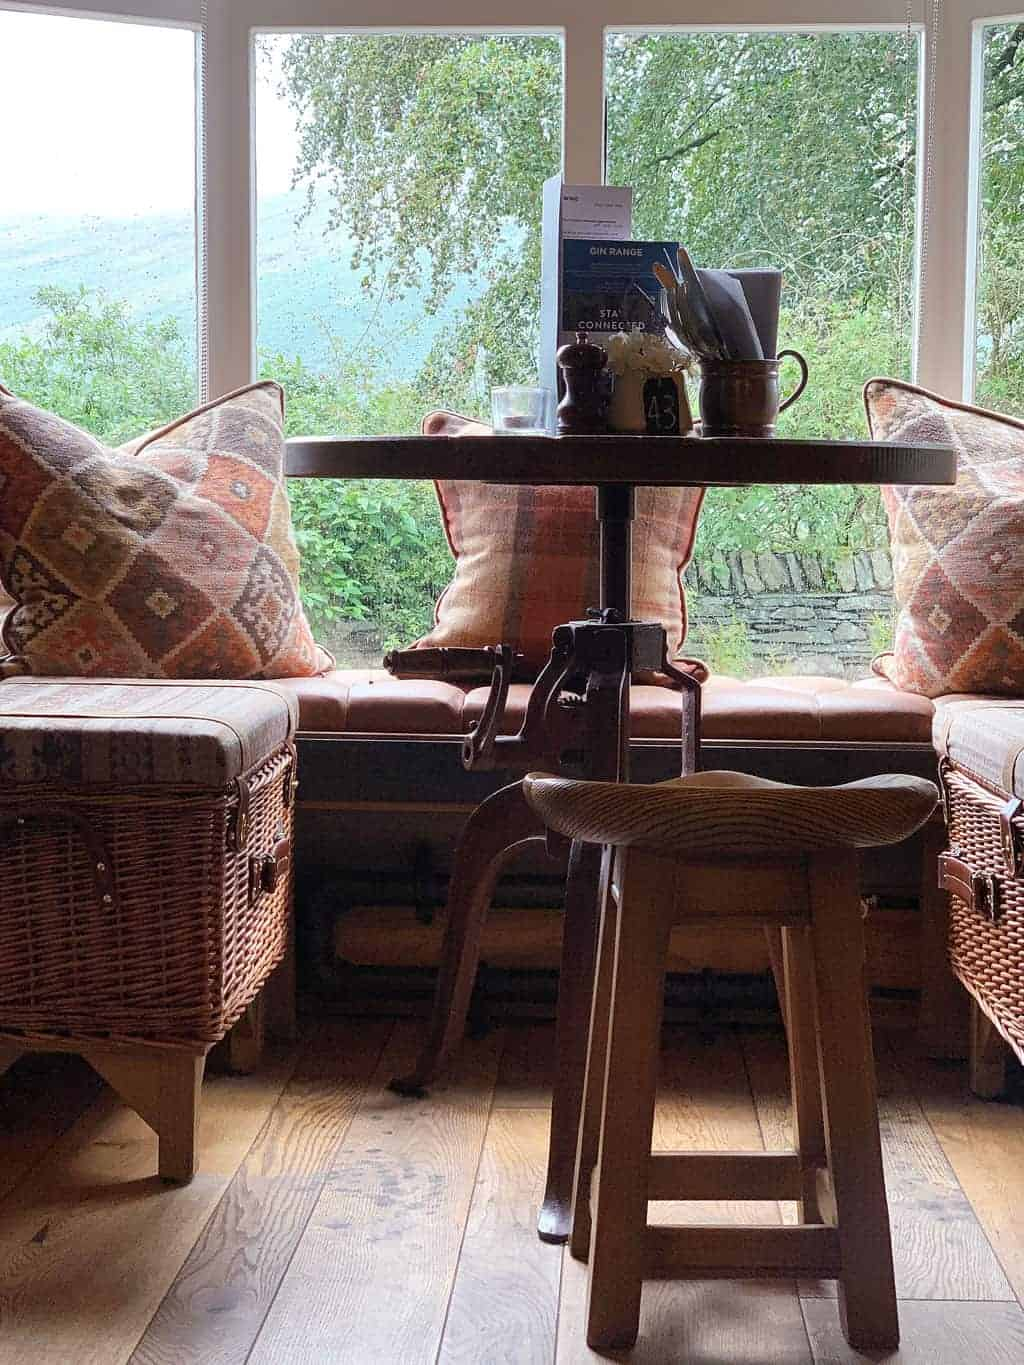 The Queens Head Troutbeck